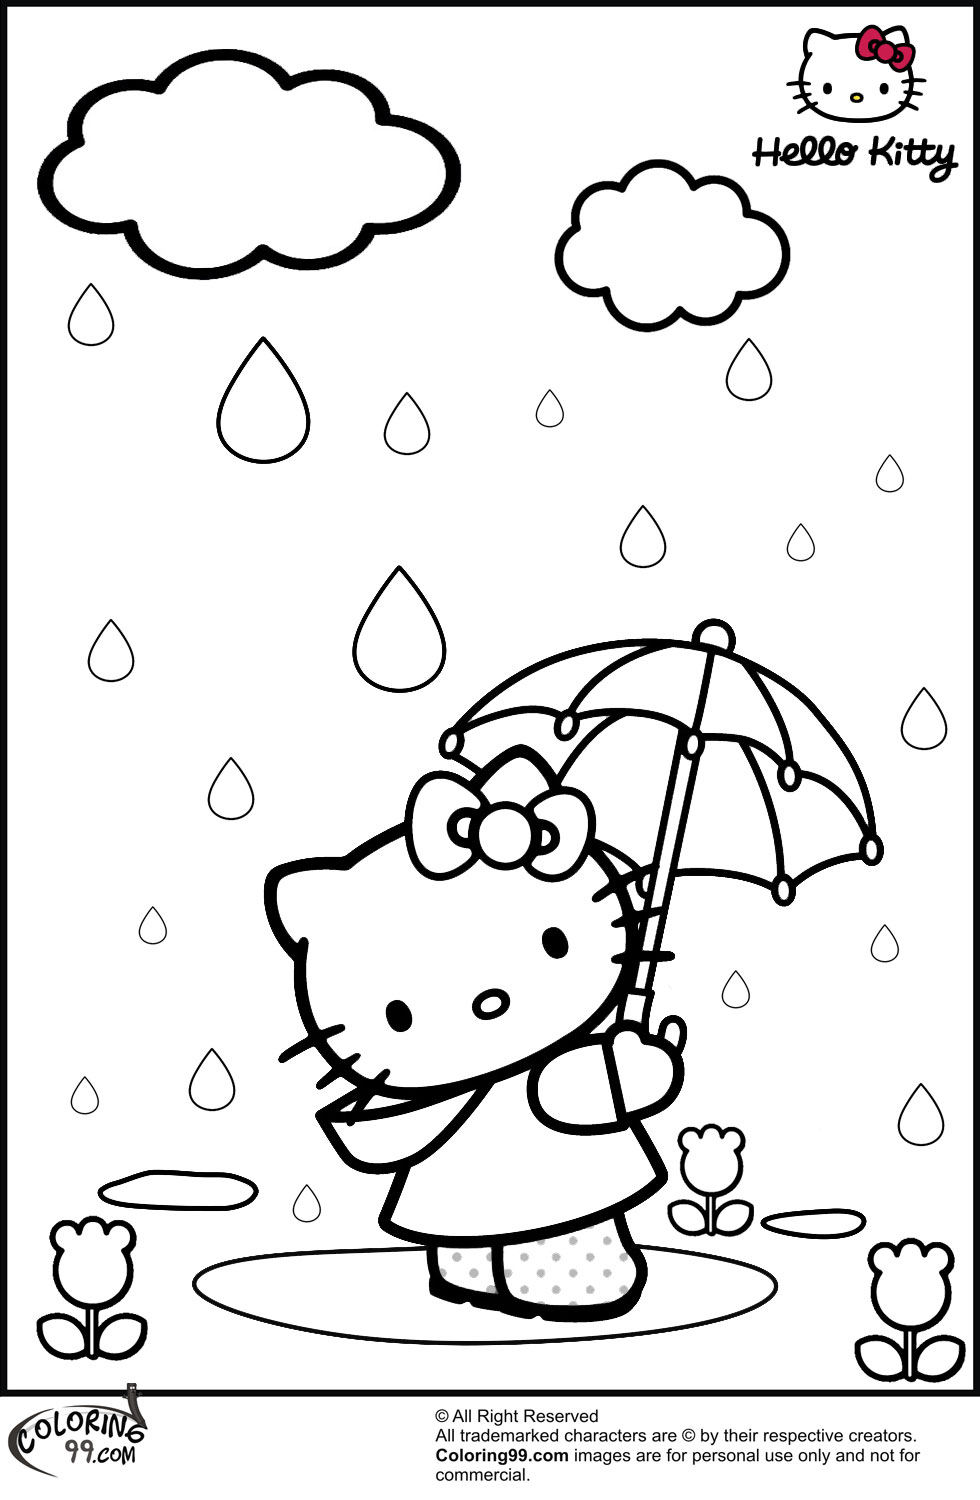 hello kitty pictures for coloring 20 free printable hello kitty coloring pages printable pictures for kitty hello coloring